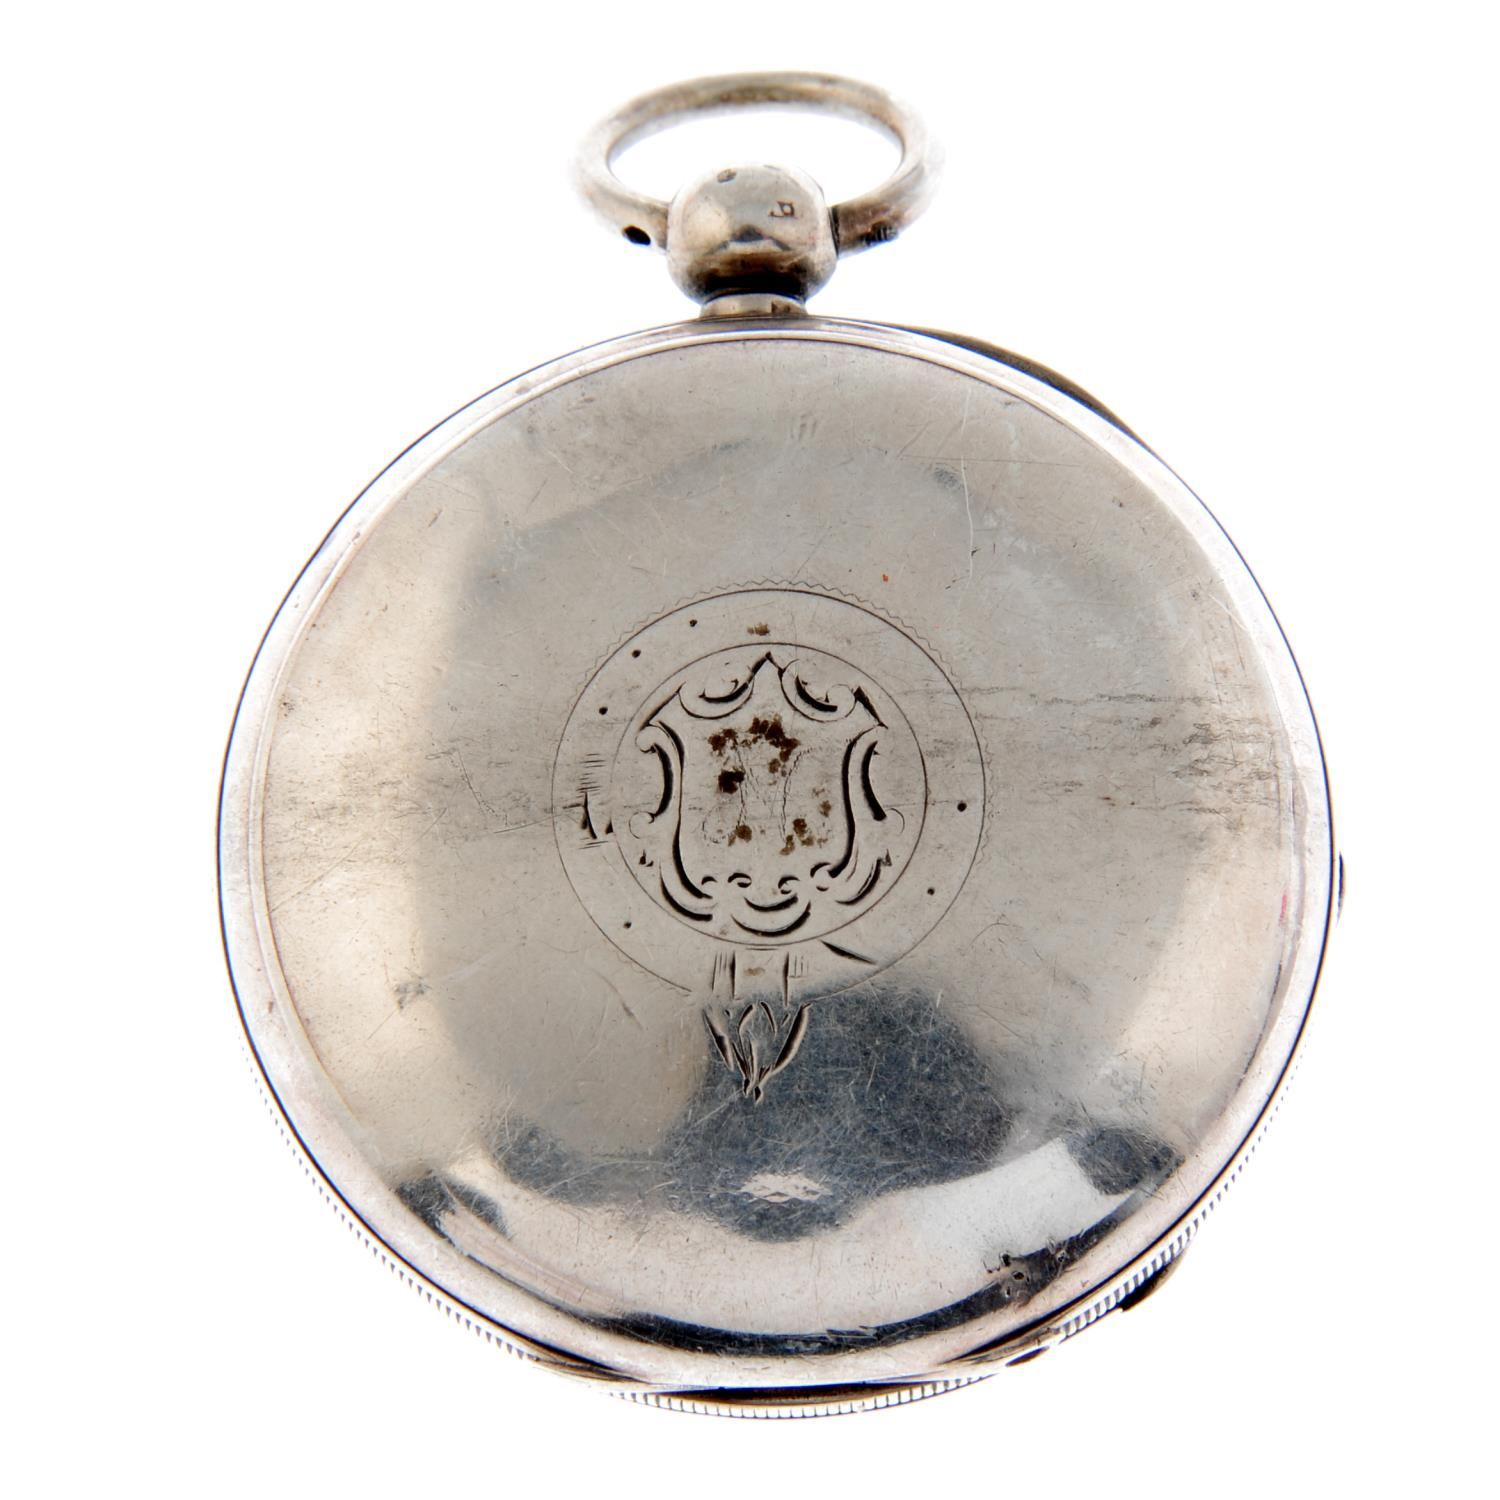 An open face pocket watch by Waltham. - Image 2 of 5